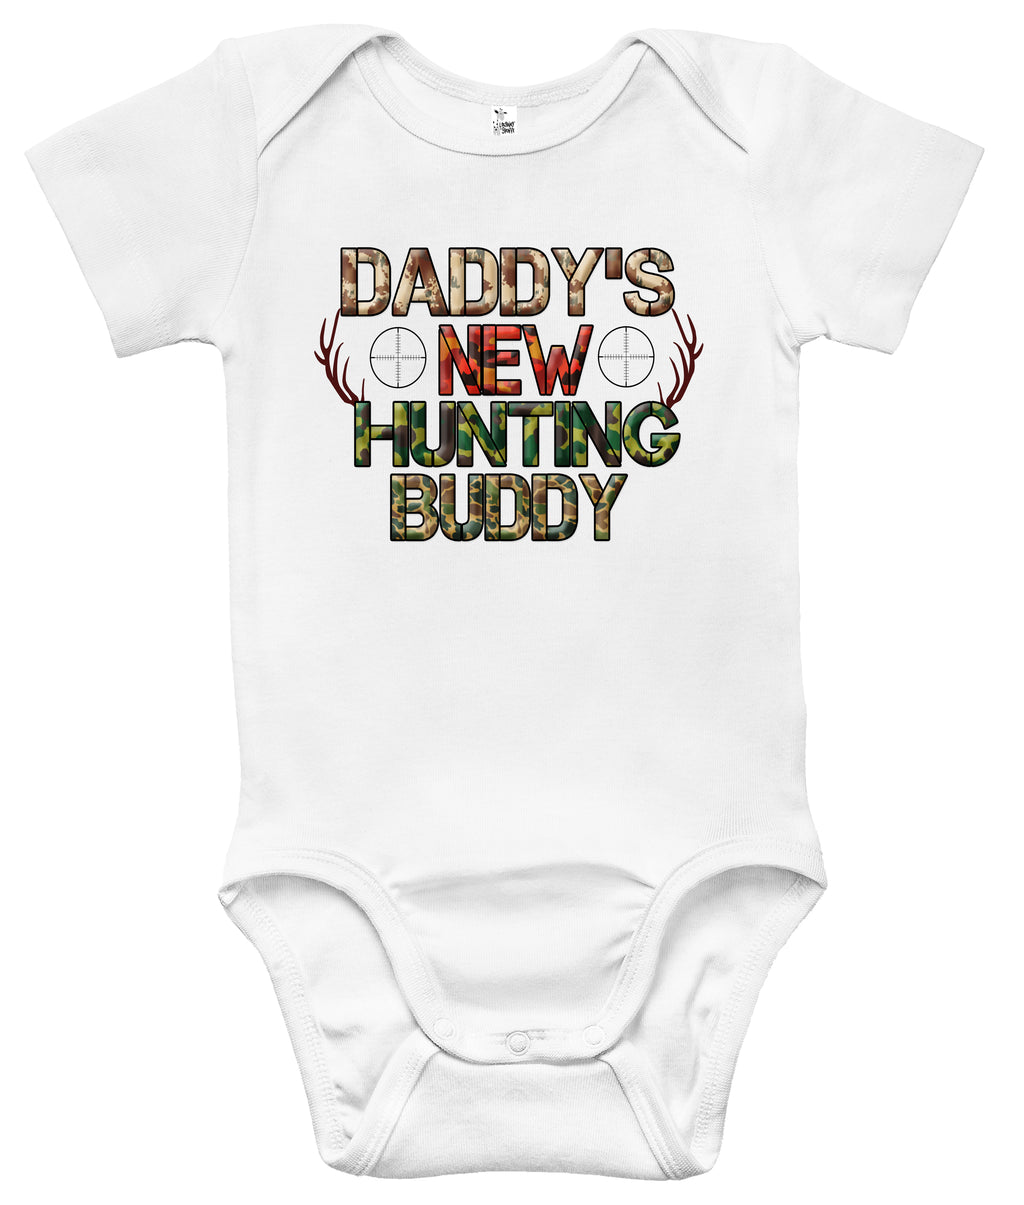 Baby Bodysuit - Daddy's New Hunting Buddy